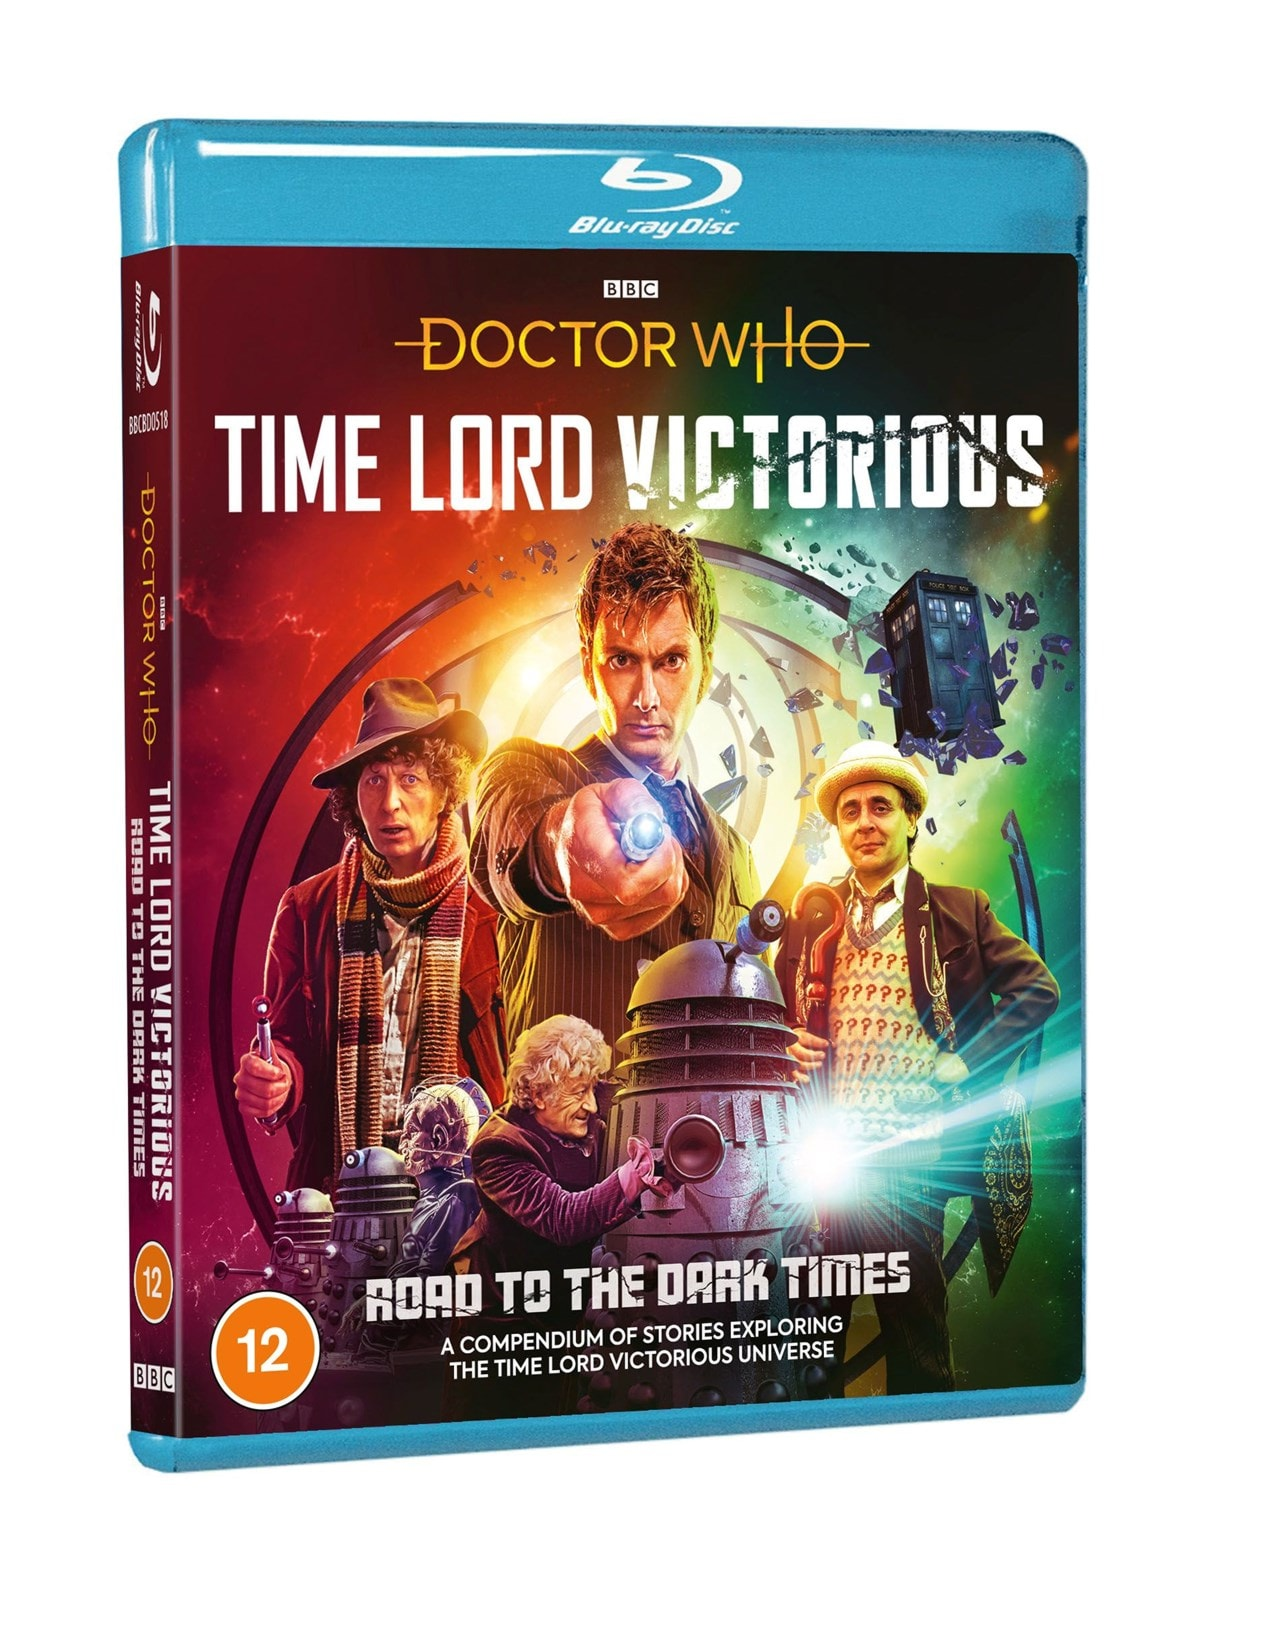 Doctor Who: Time Lord Victorious - Road to the Dark Times. Cover by Lee Binding (c) BBC Studios